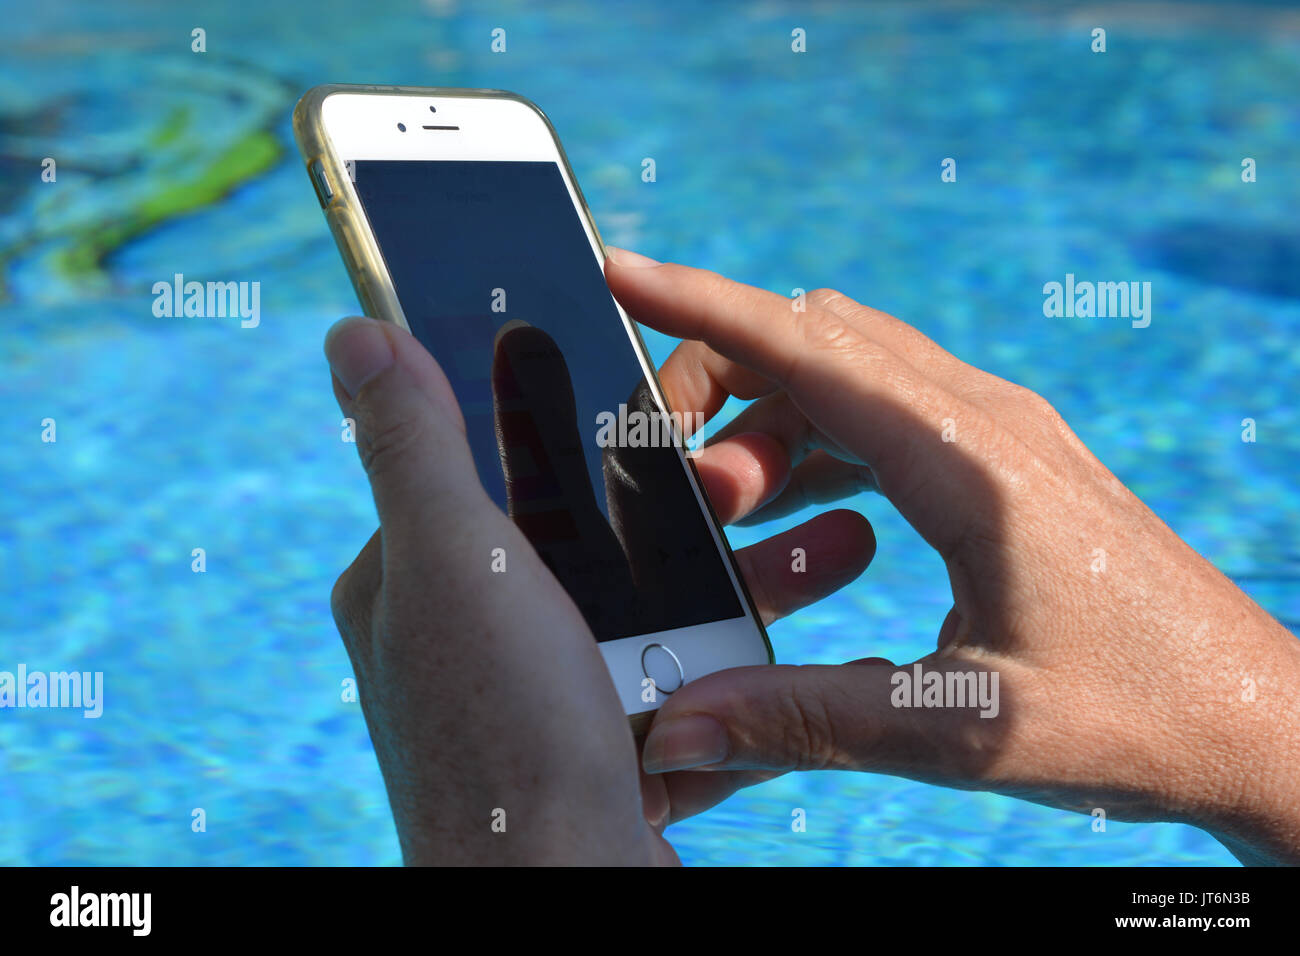 Digital technology. Using mobile device on holiday. - Stock Image